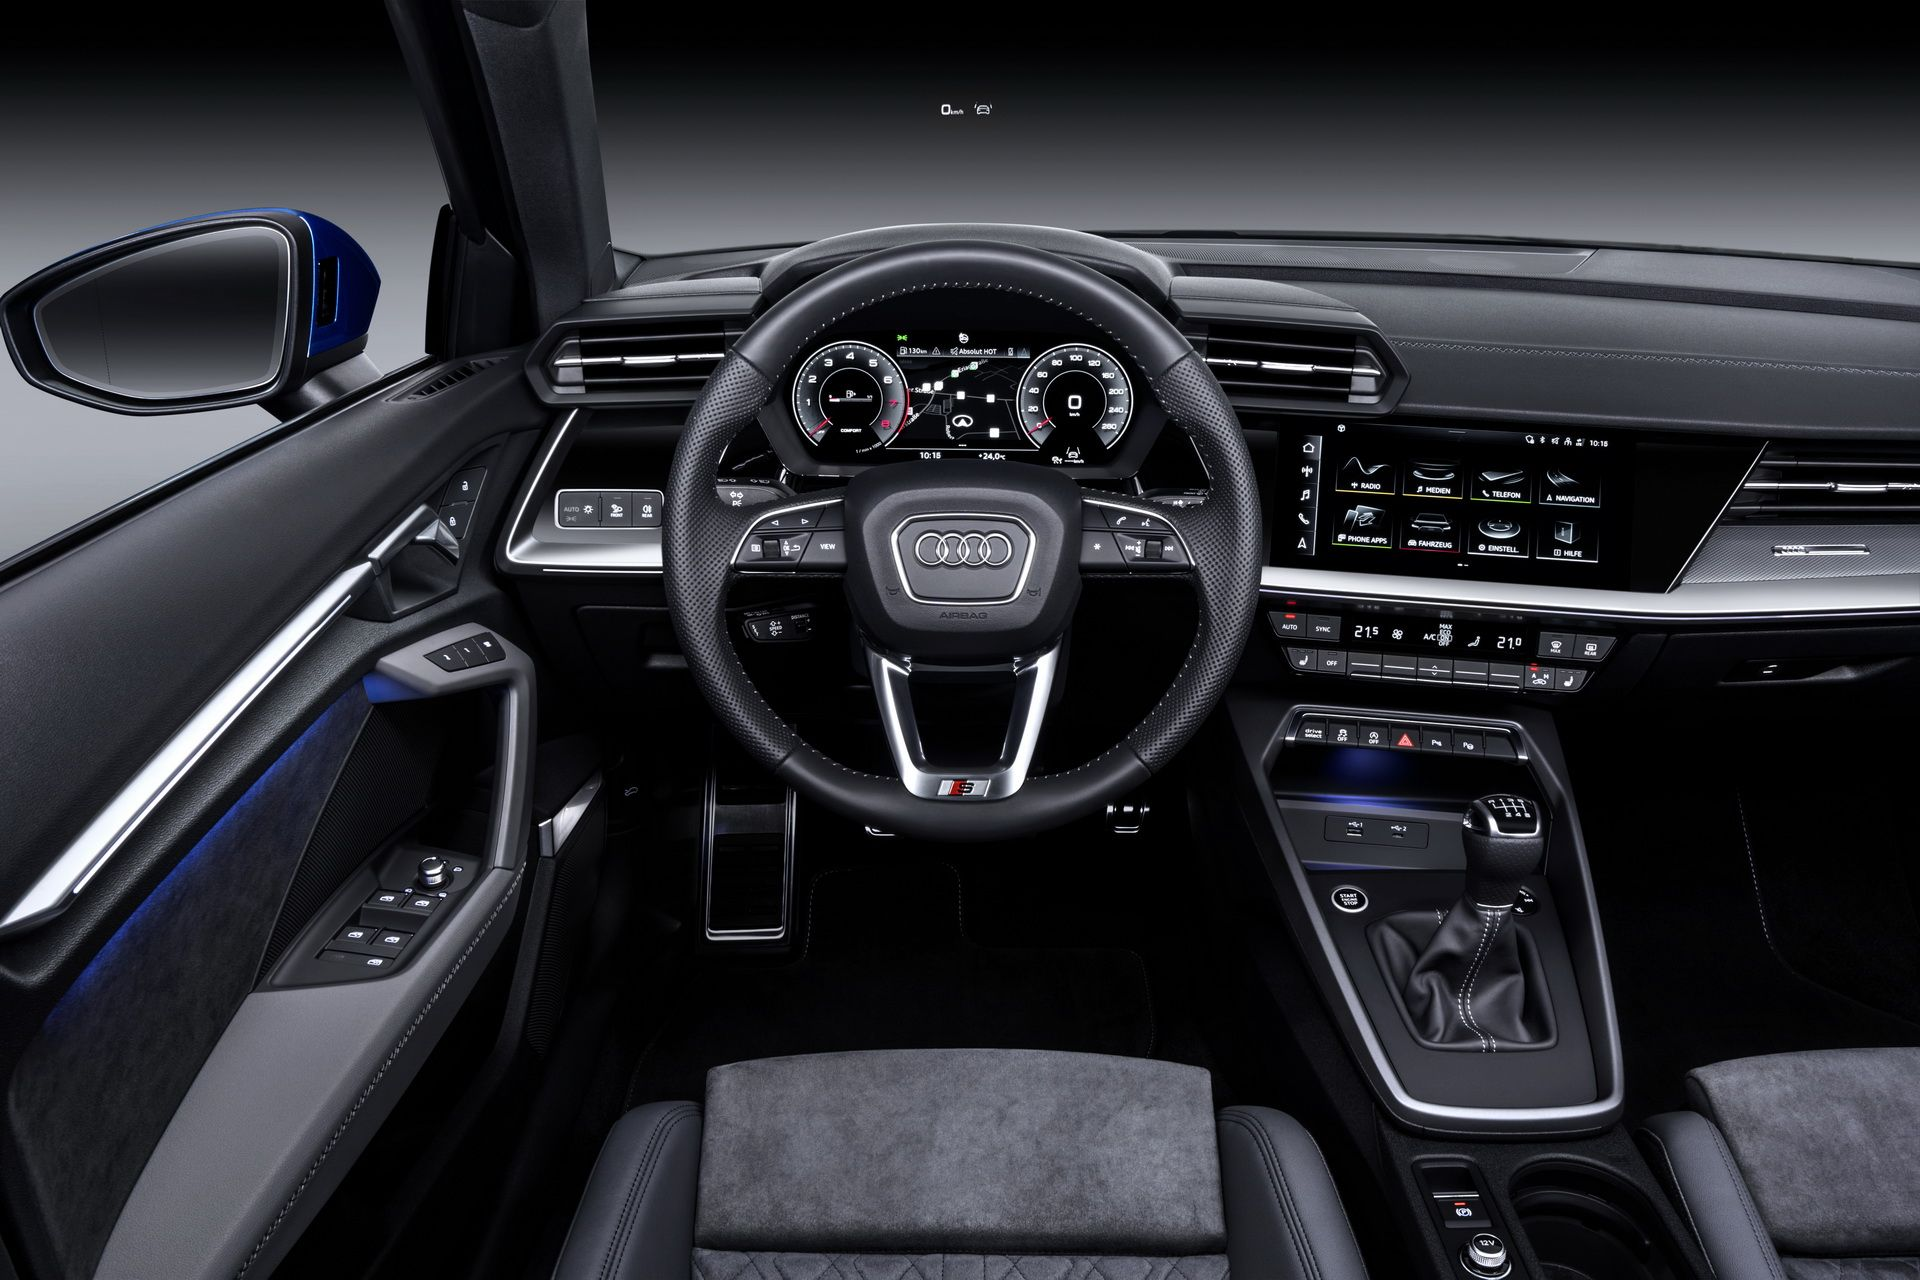 New Audi A3 Arrives With More Aggressive Styling And A Hint Of Lambo Dna Inside Carscoops Audi A3 Sportback Audi A3 Sportback 2020 Audi A3